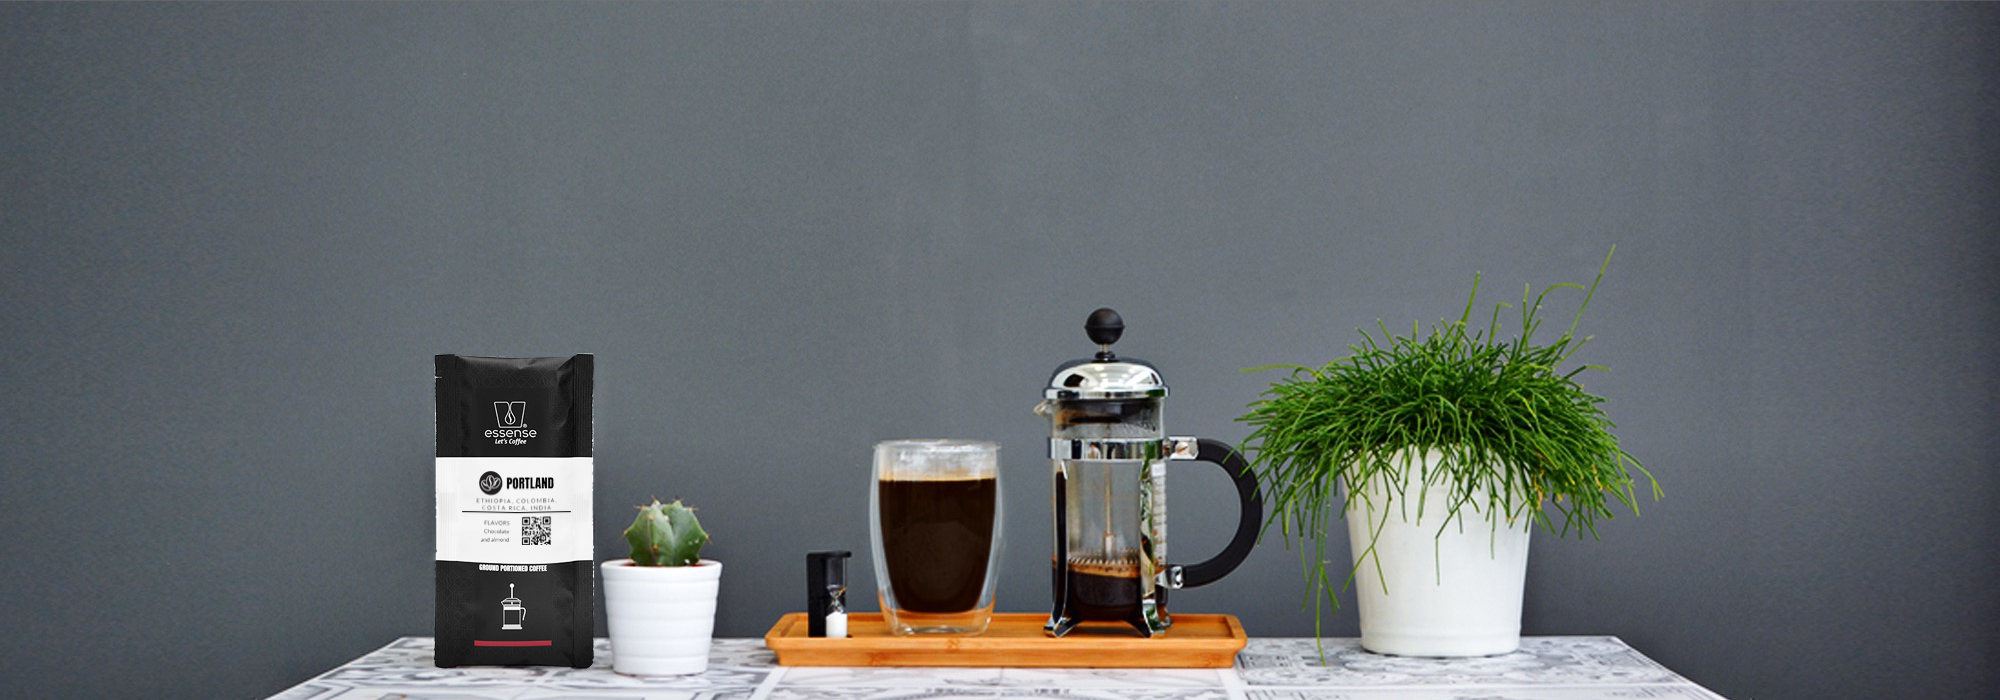 tutorial coffee brewing french press